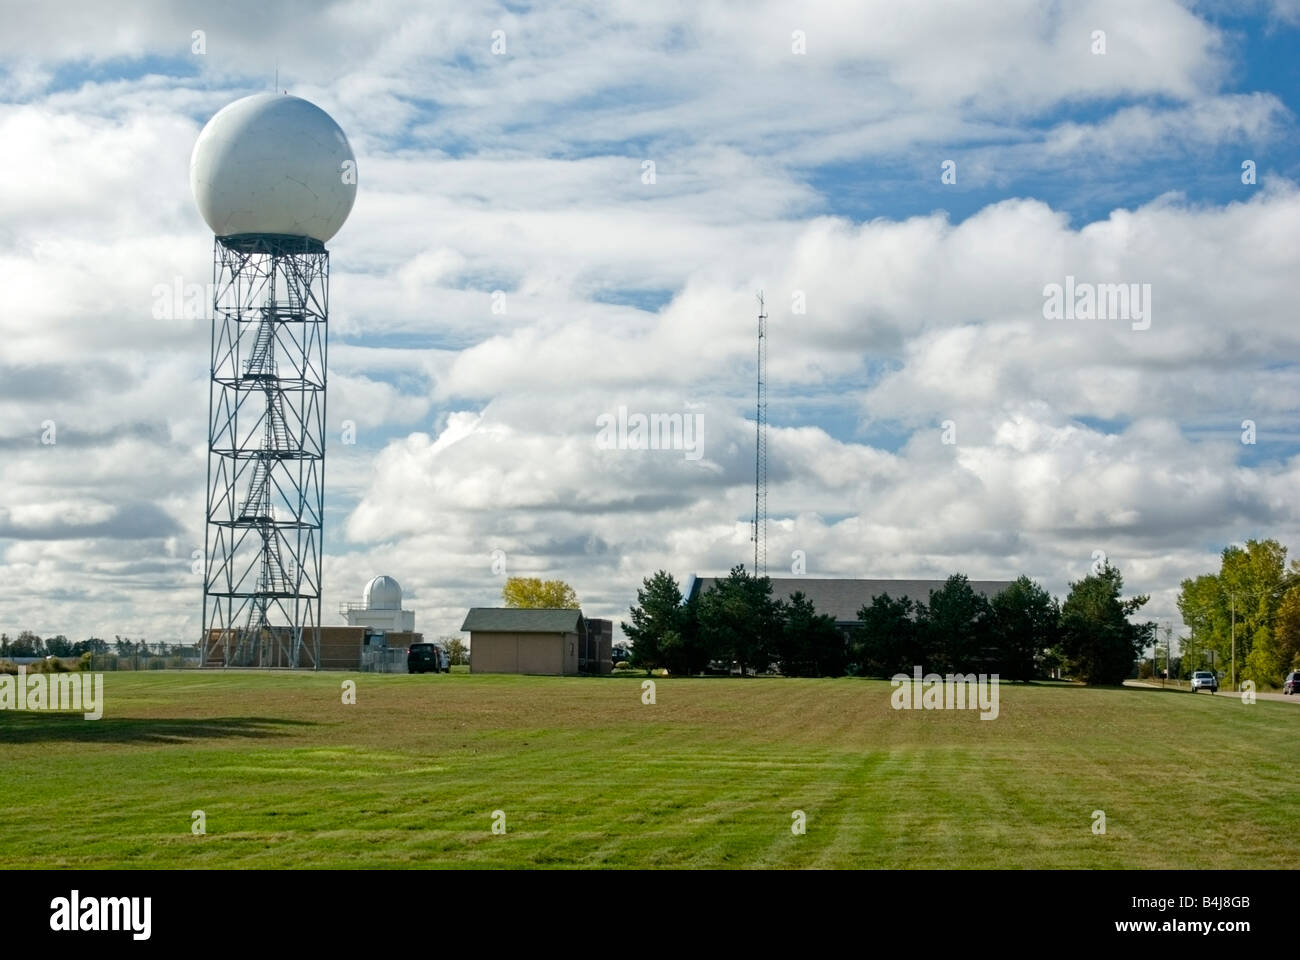 Weather Radar Antenna Stock Photos & Weather Radar Antenna Stock